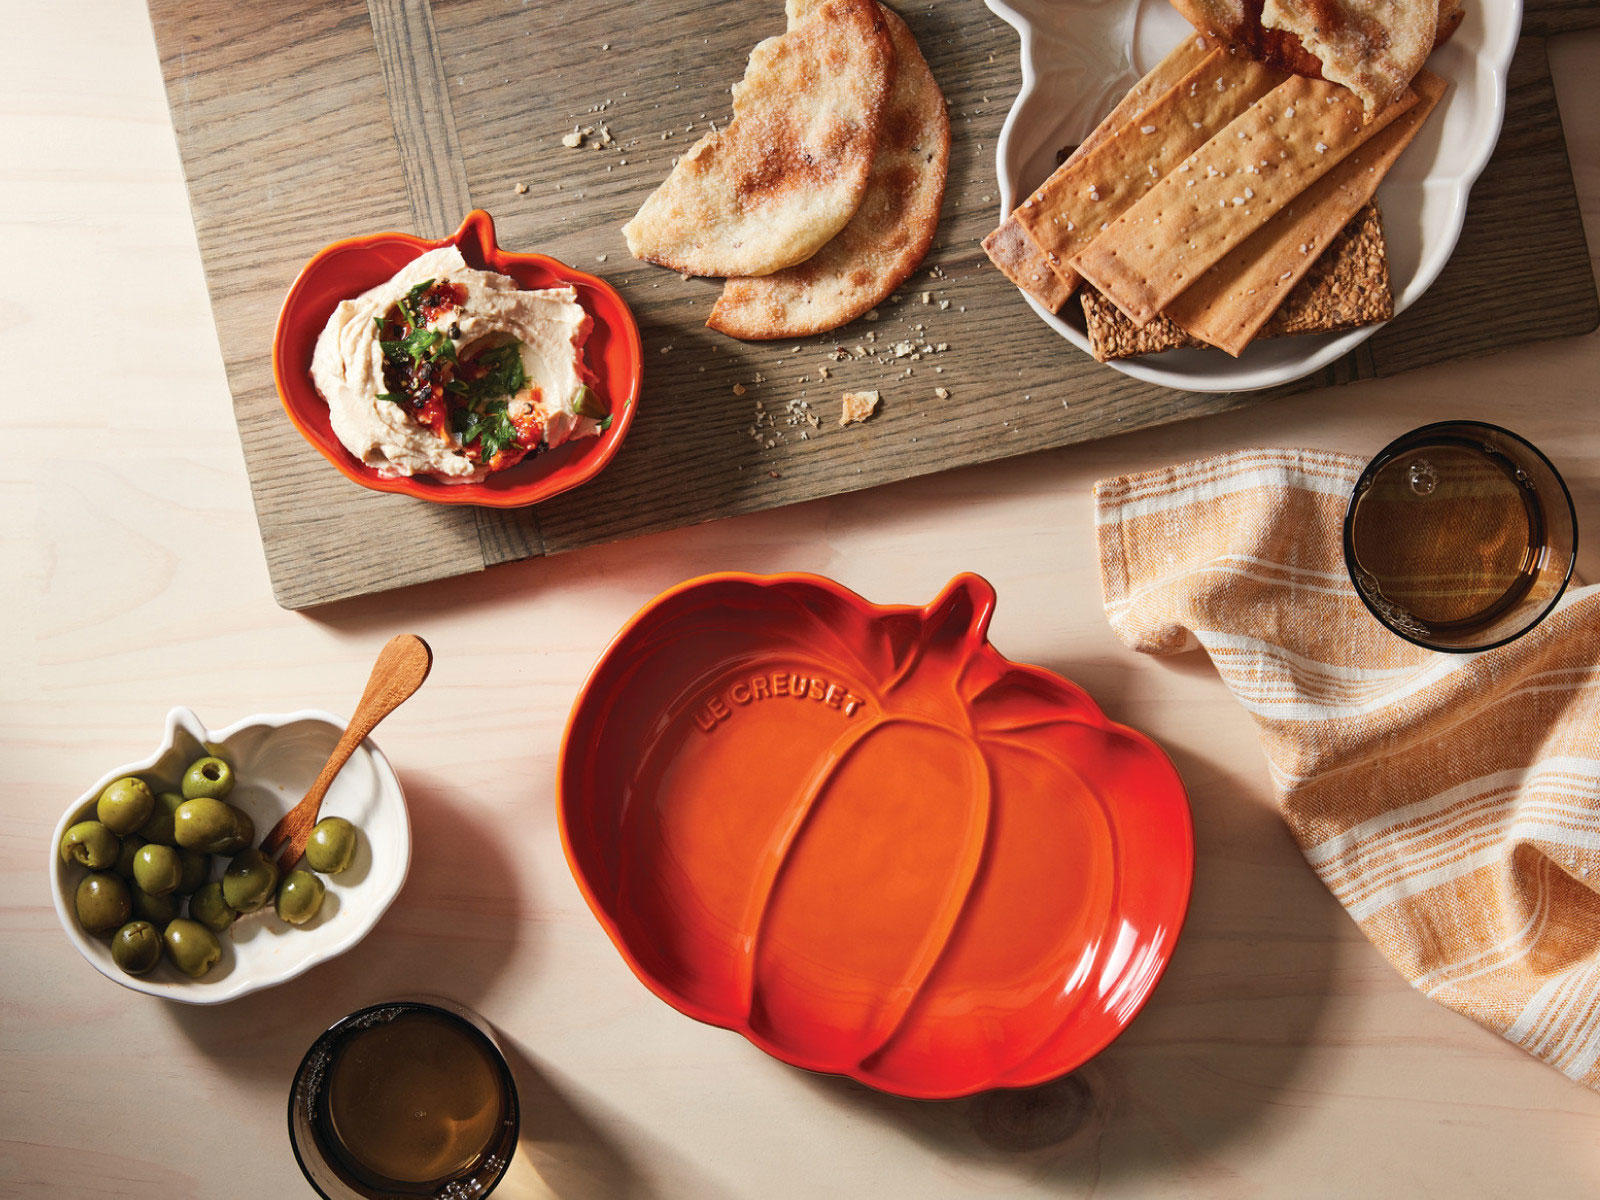 Le Creuset Just Launched the Cutest New Line of Pumpkin-Theme